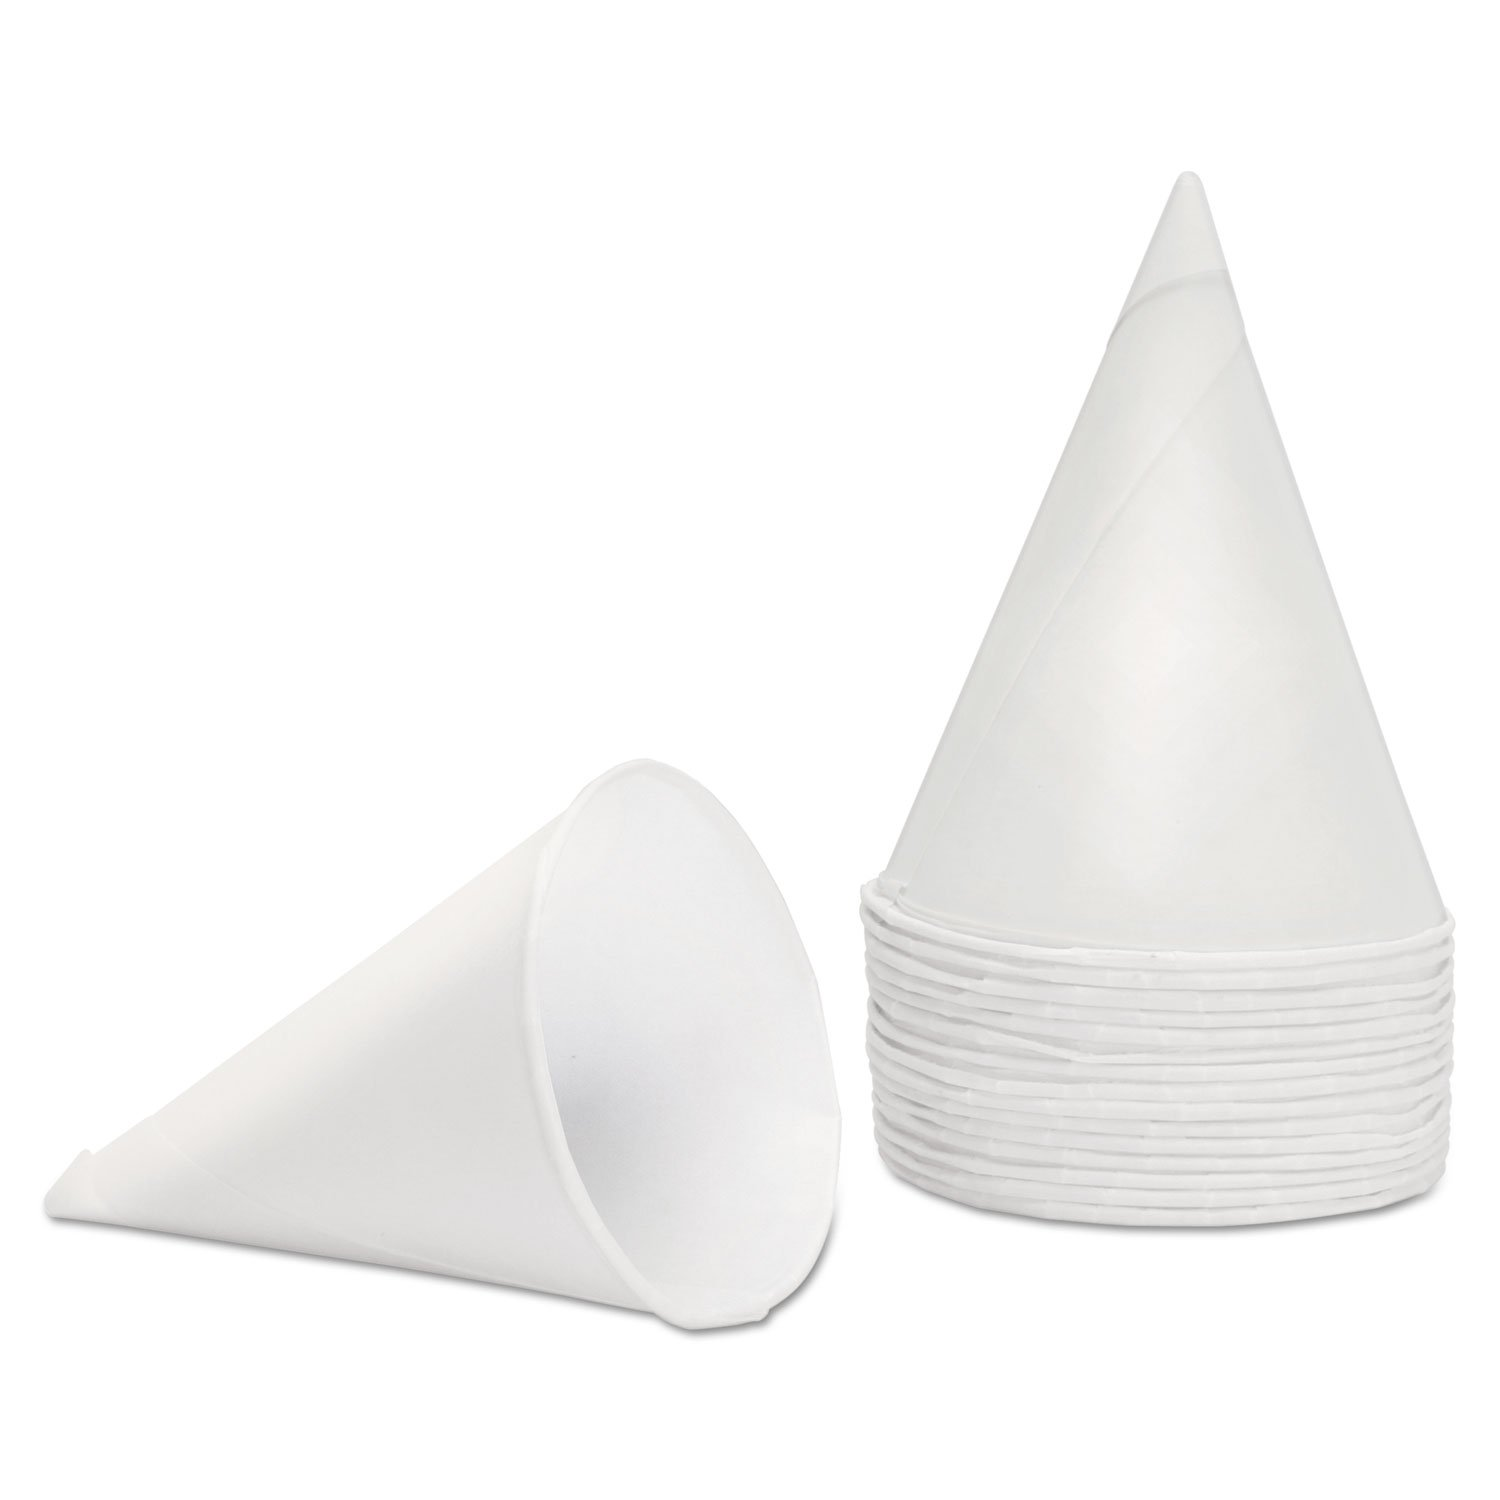 Konie 45KBR Rolled Rim, Poly Bagged  Paper Cone Cups, 4.5oz, White (Case of 5000)